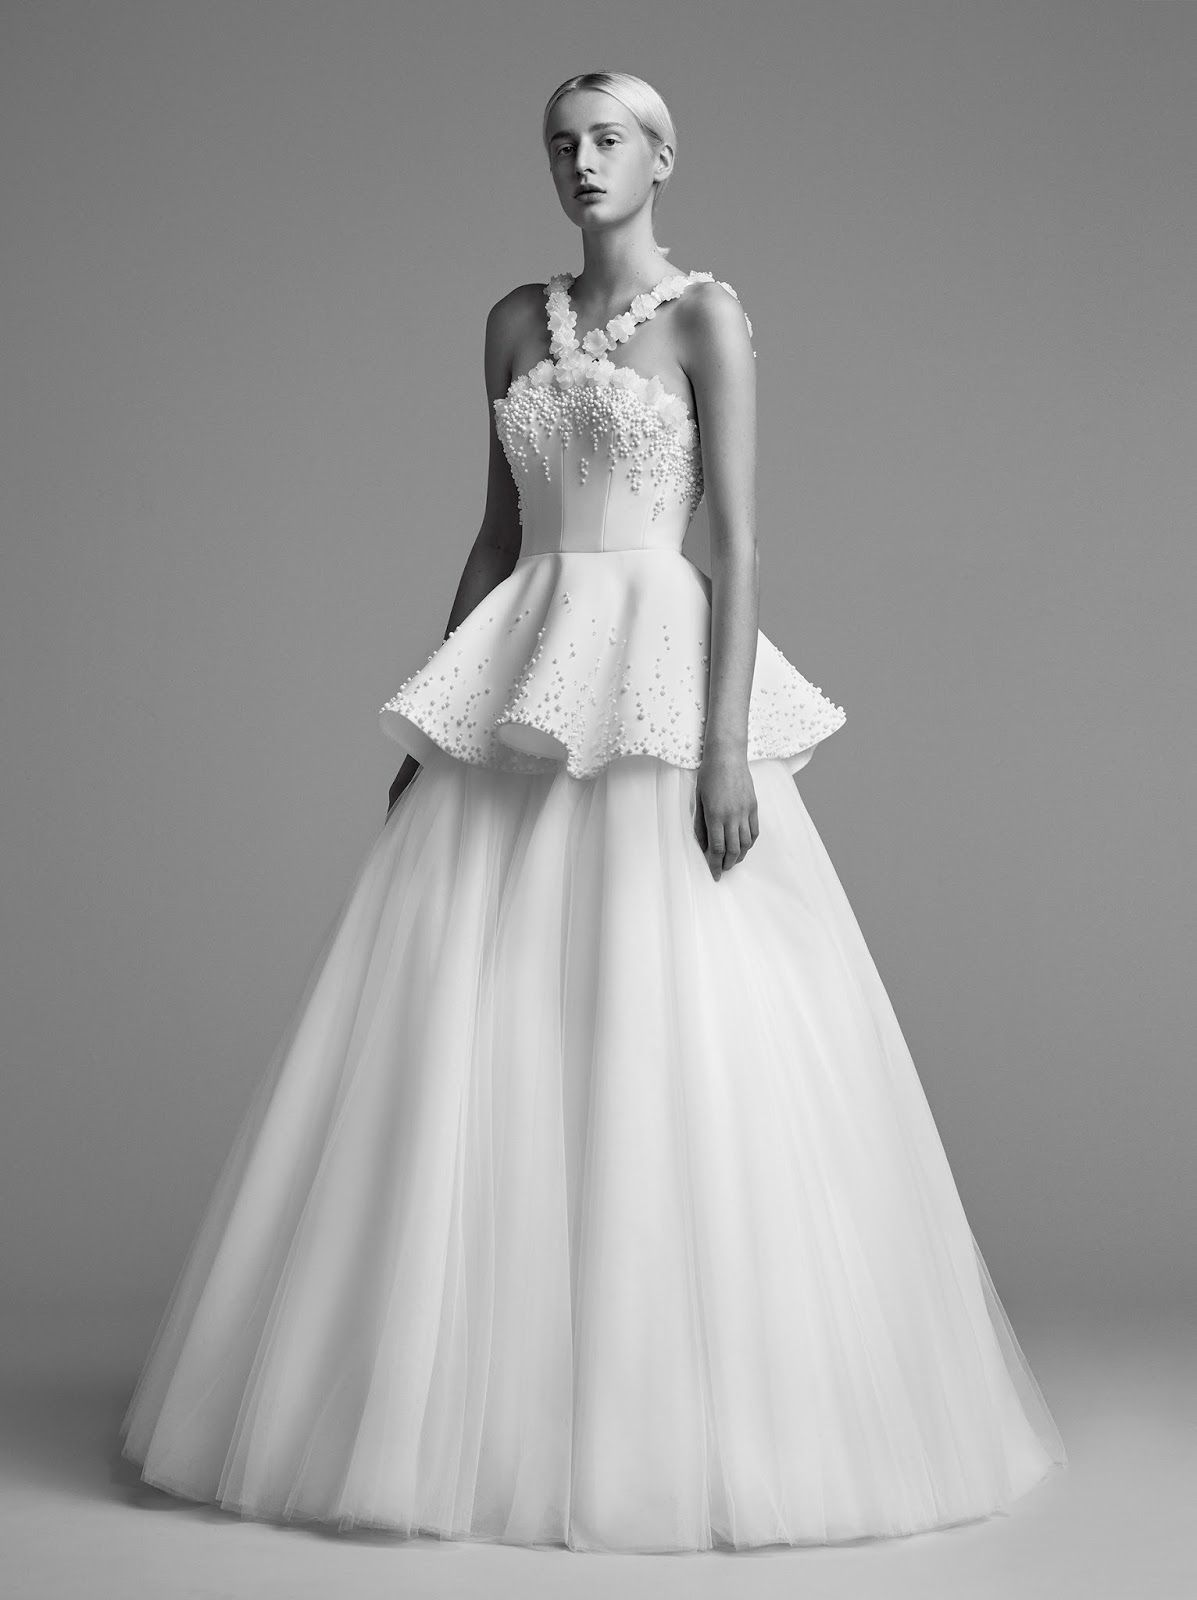 Simply Exquisite Bridal Collection Viktor And Rolf Zsazsa Bellagio Like No Other